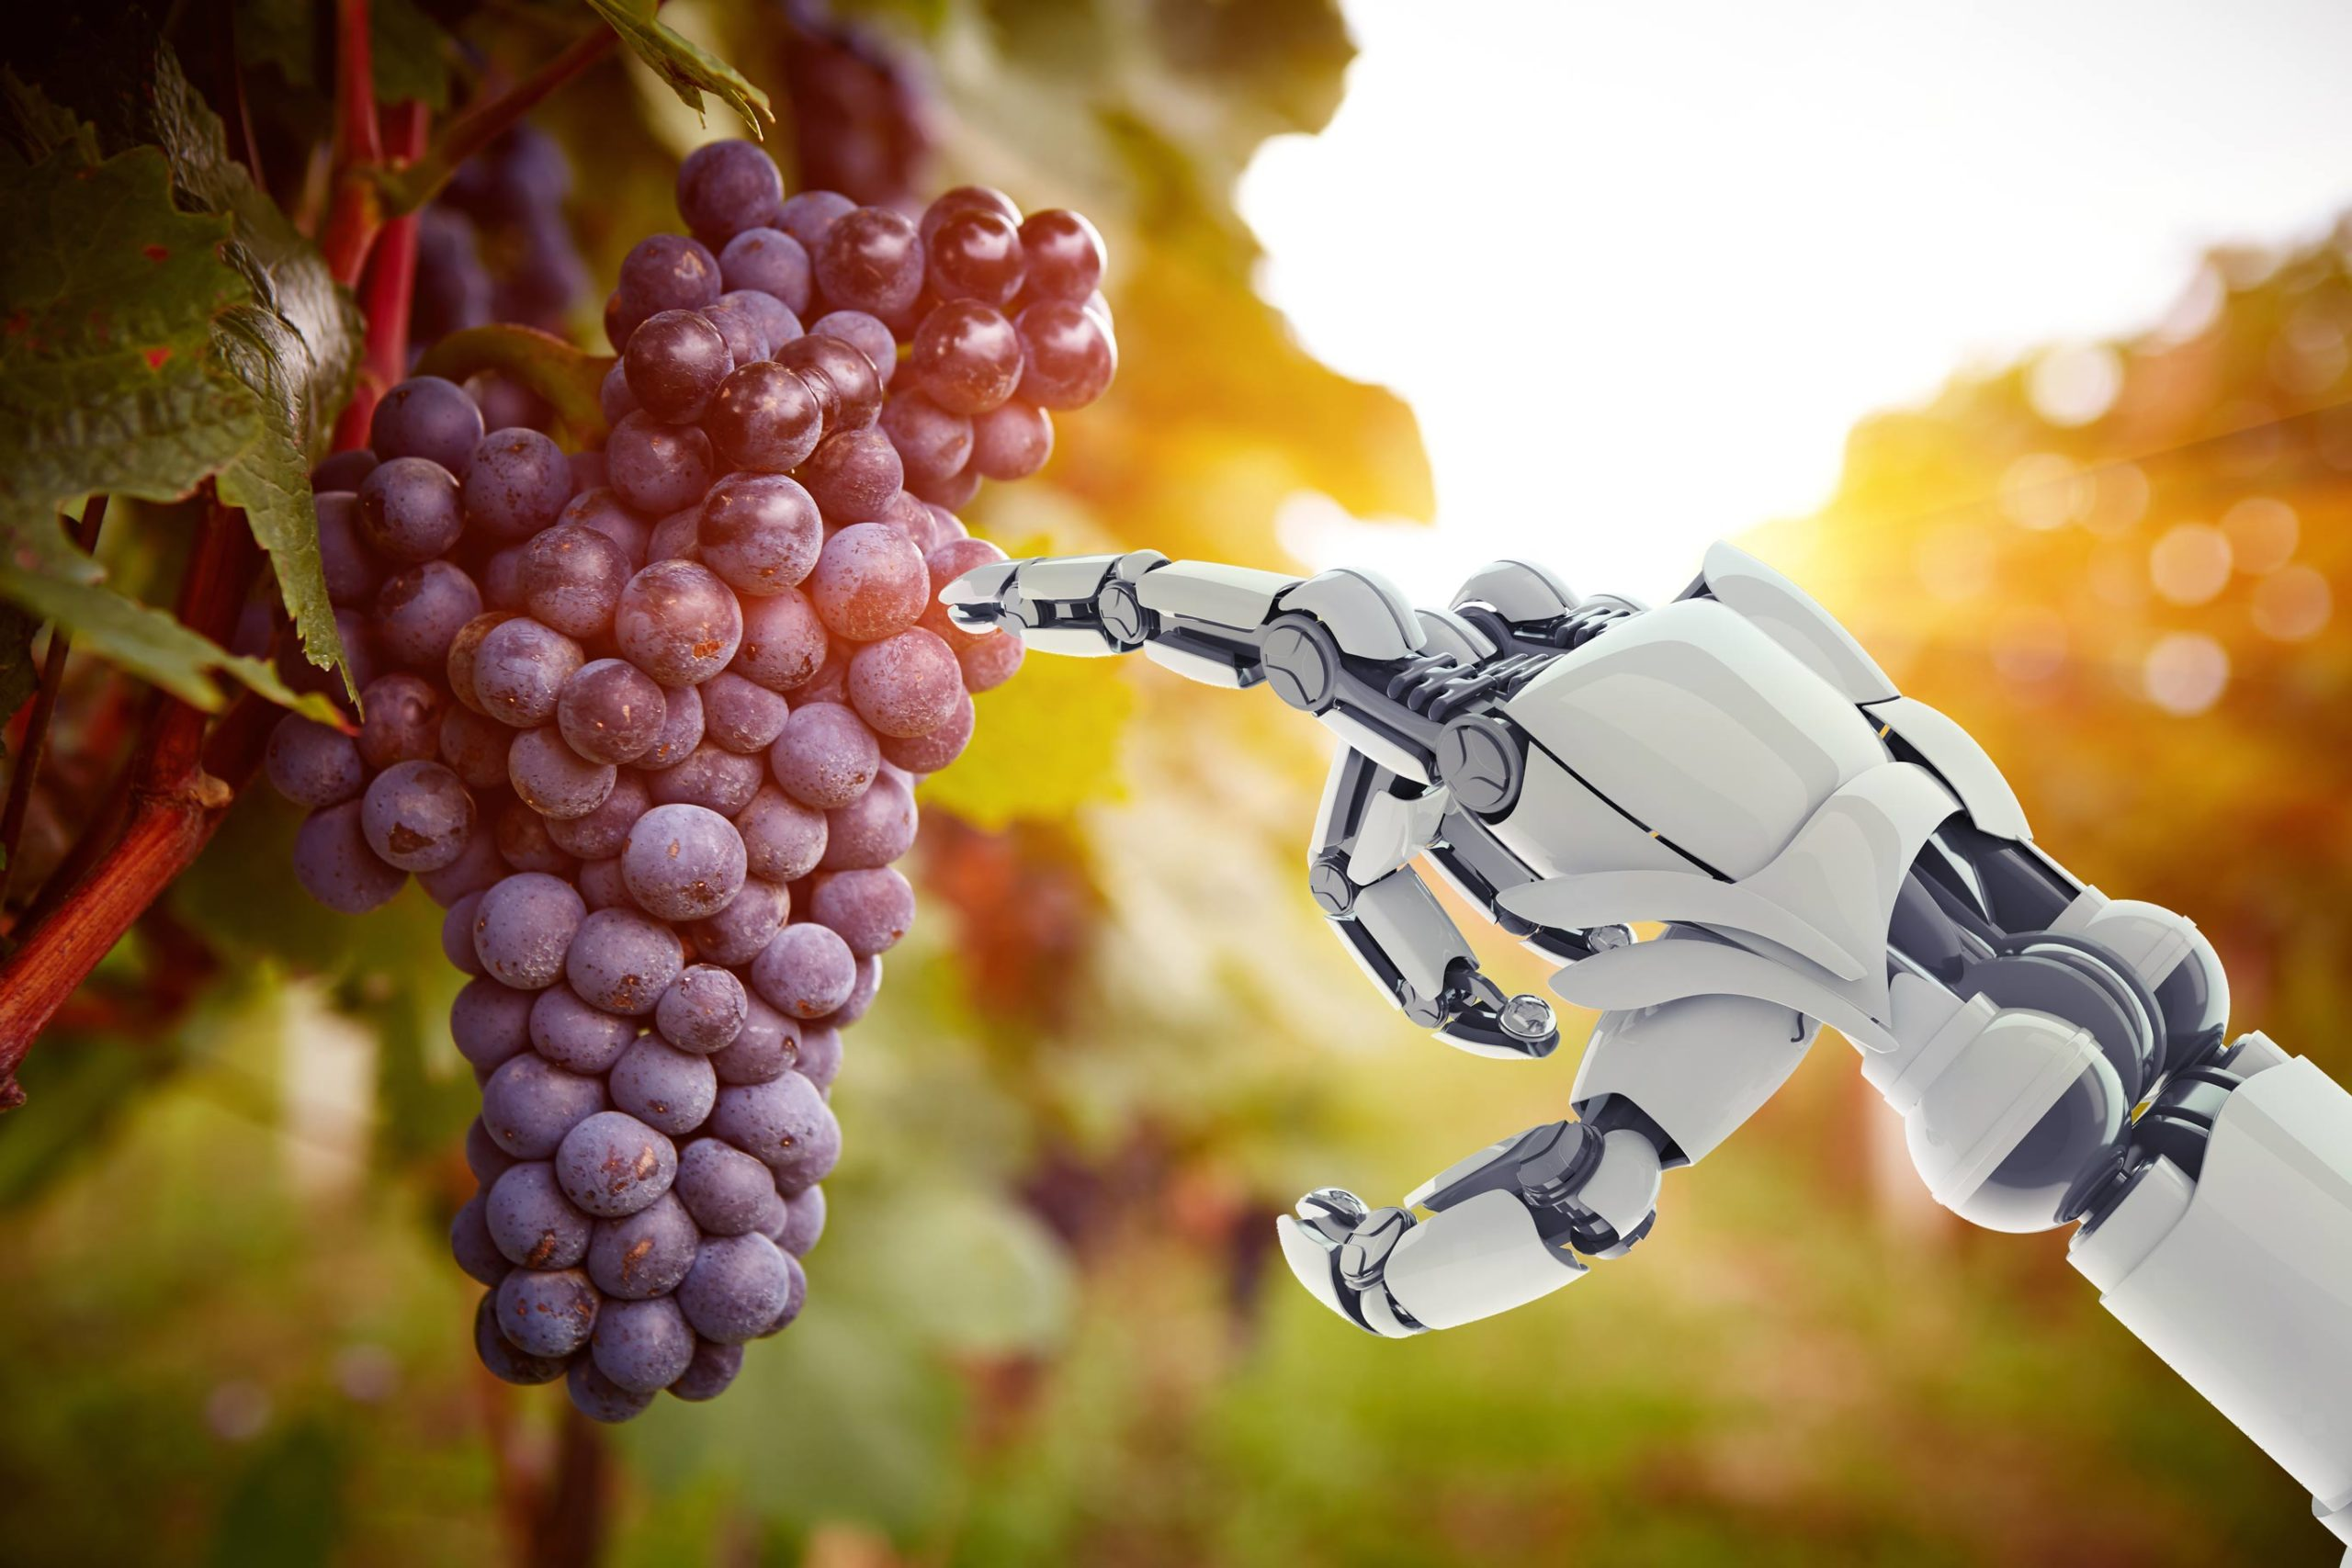 everyday economics and robots picking grapes